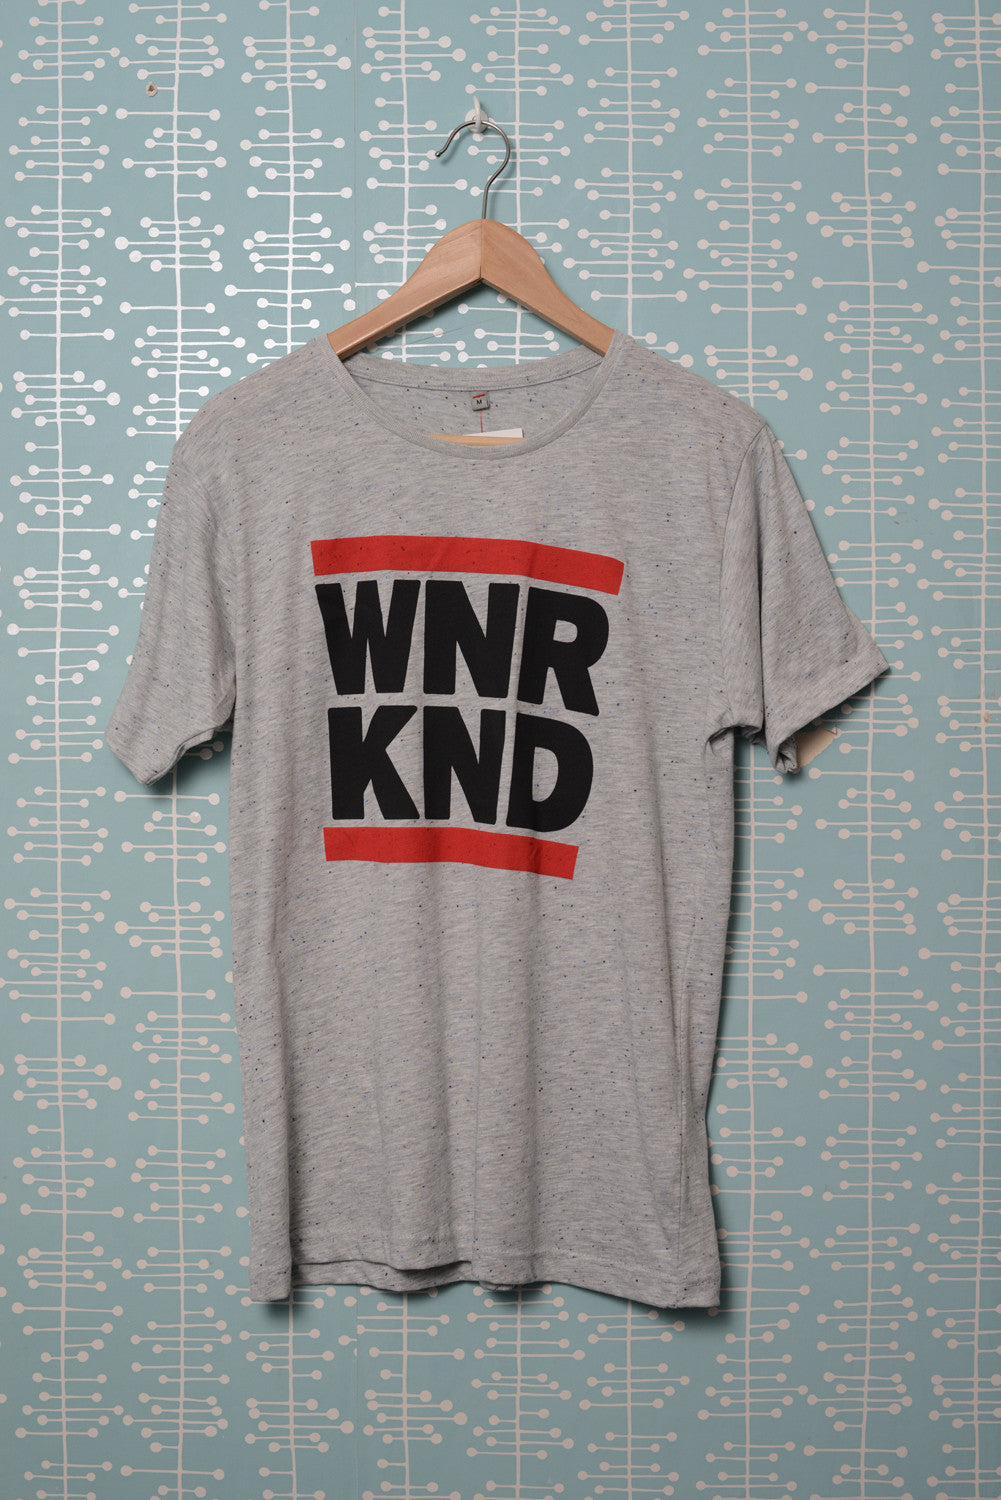 WNRKND Speckled Jersey T-Shirt grey